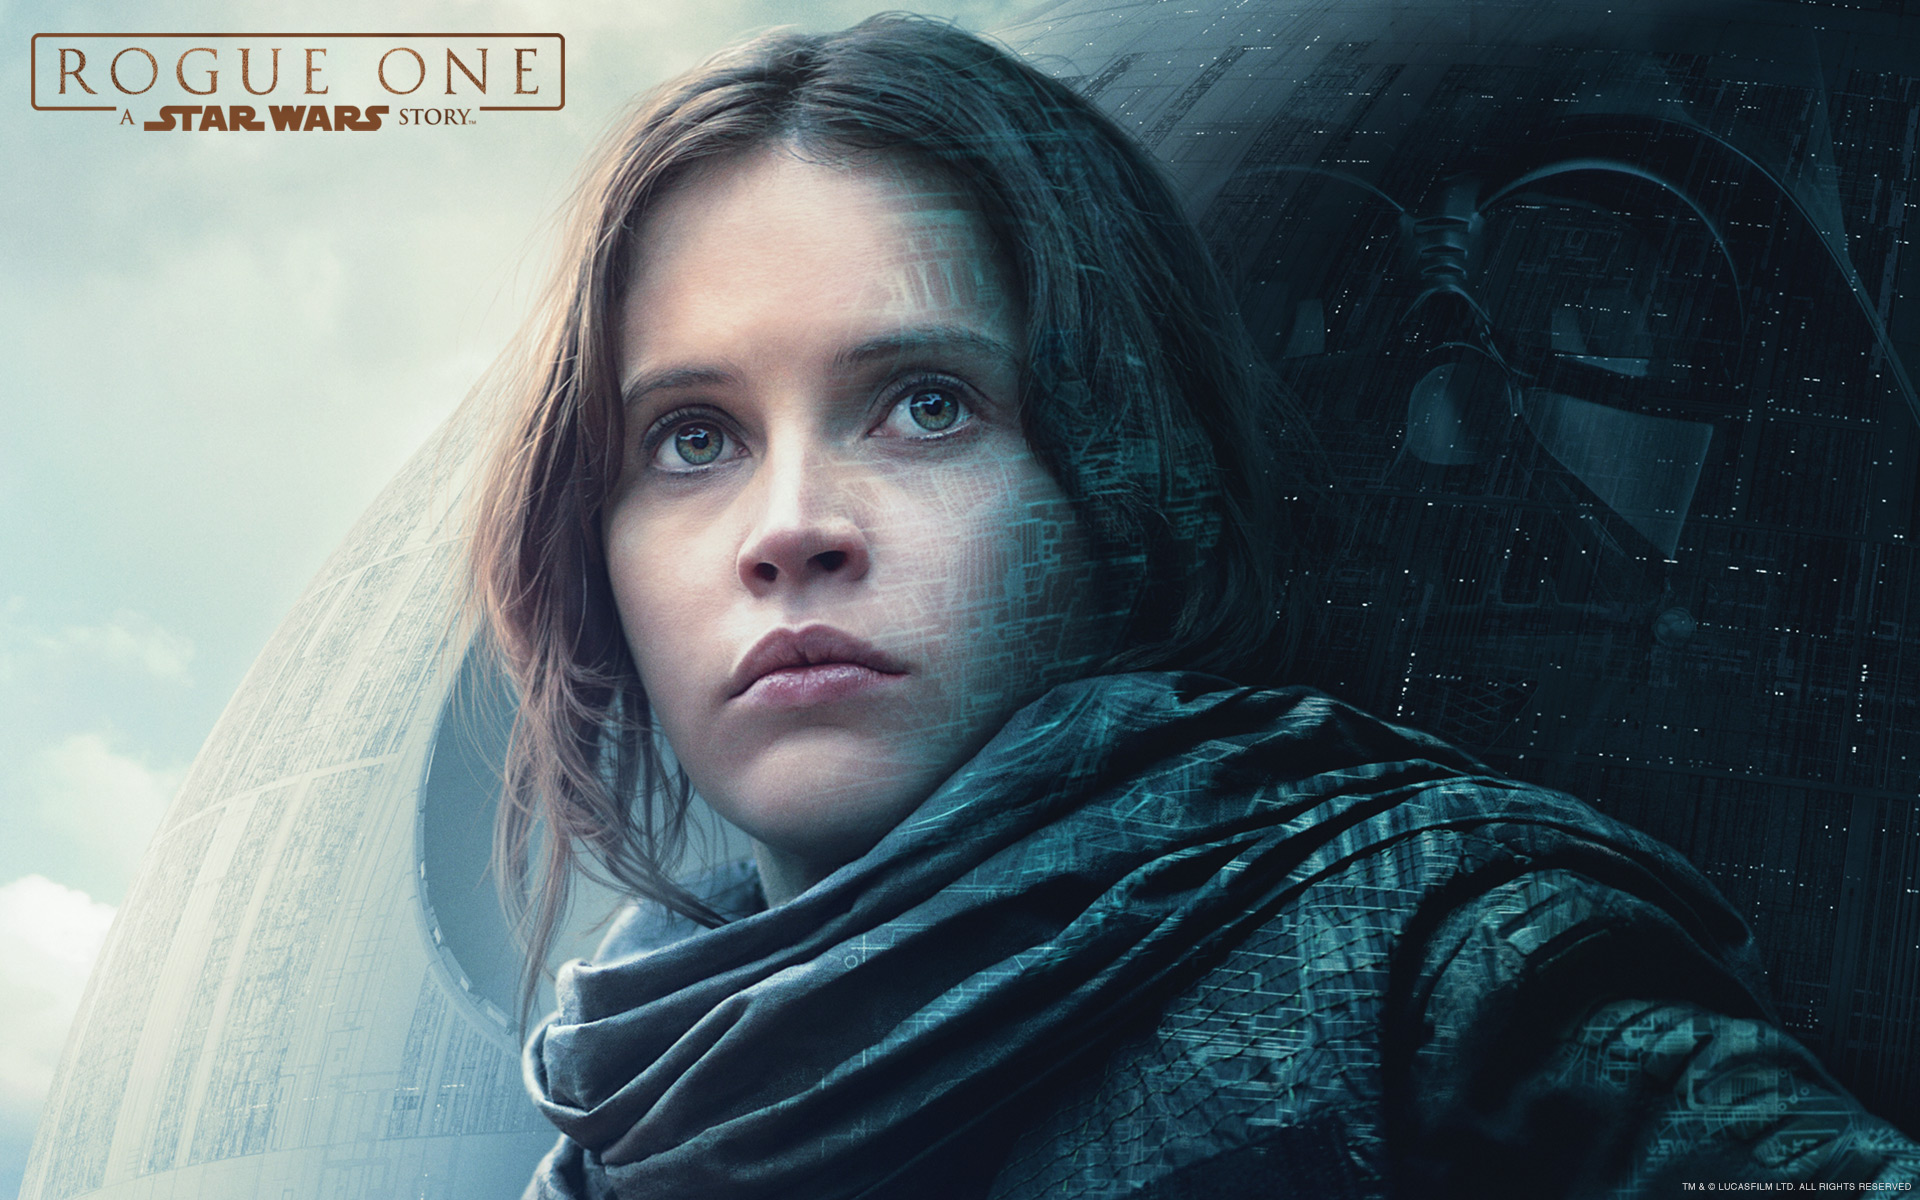 Rogue One: A Star Wars Story review [Spoiler free]